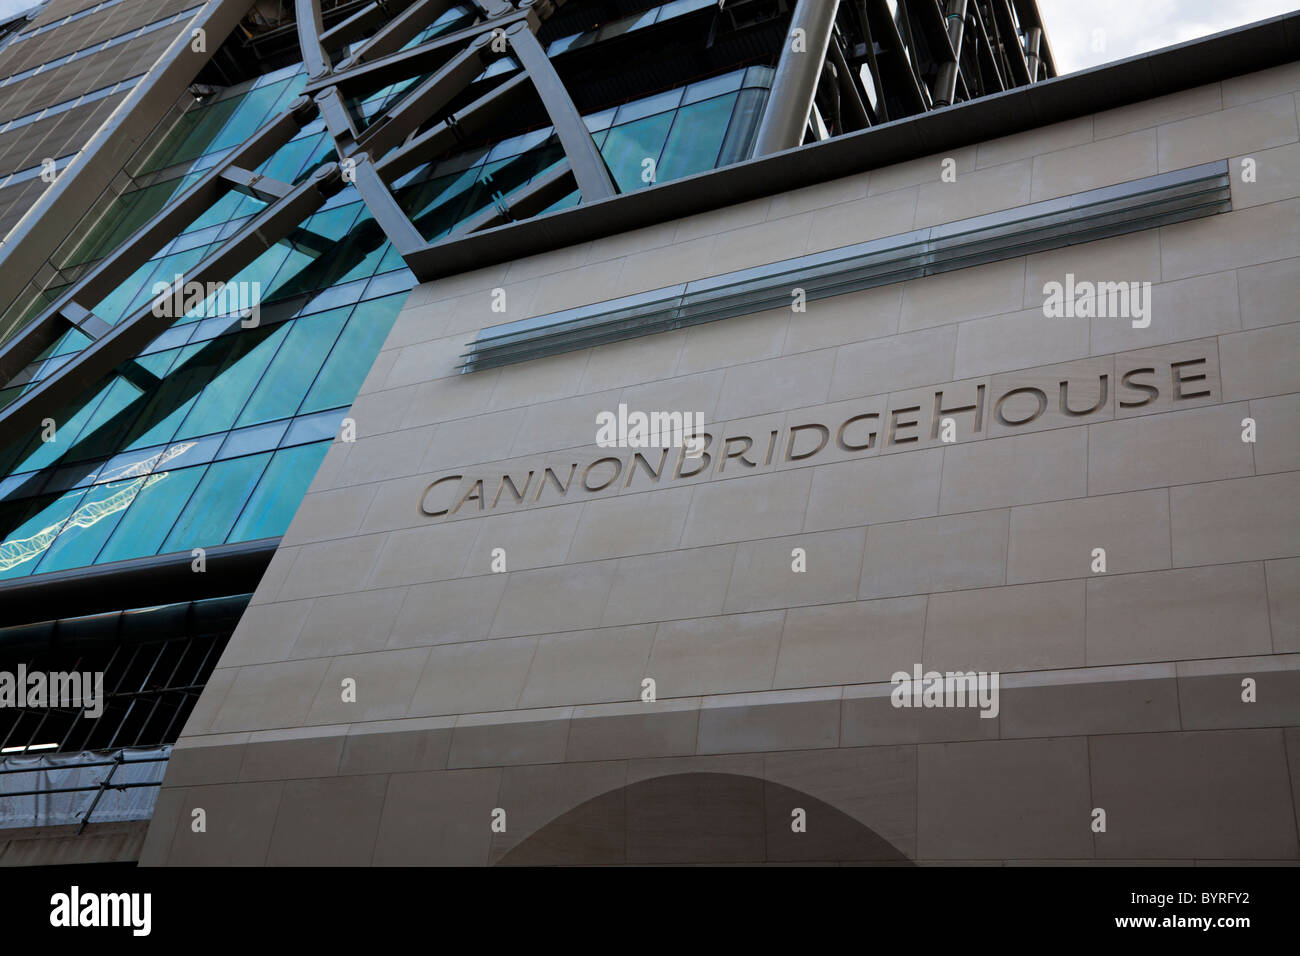 Cannon Bridge House home to NYSE Liffe, London, United Kingdom - Stock Image